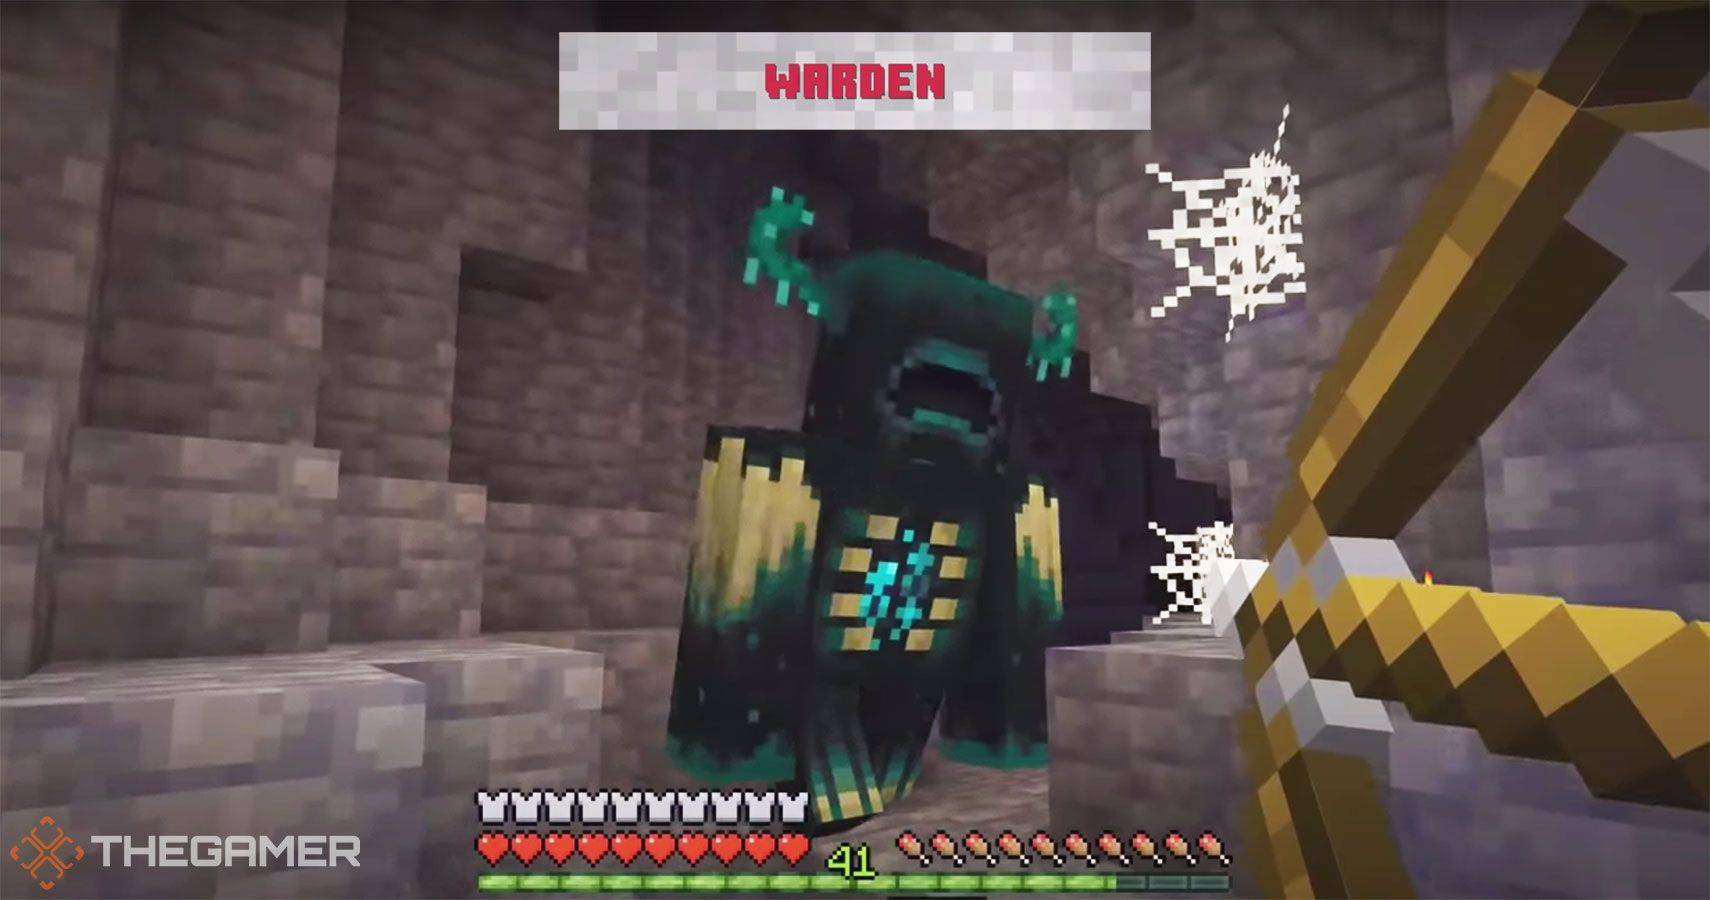 The New Hostile Minecraft Mob, The Warden, Will Haunt Your Dreams